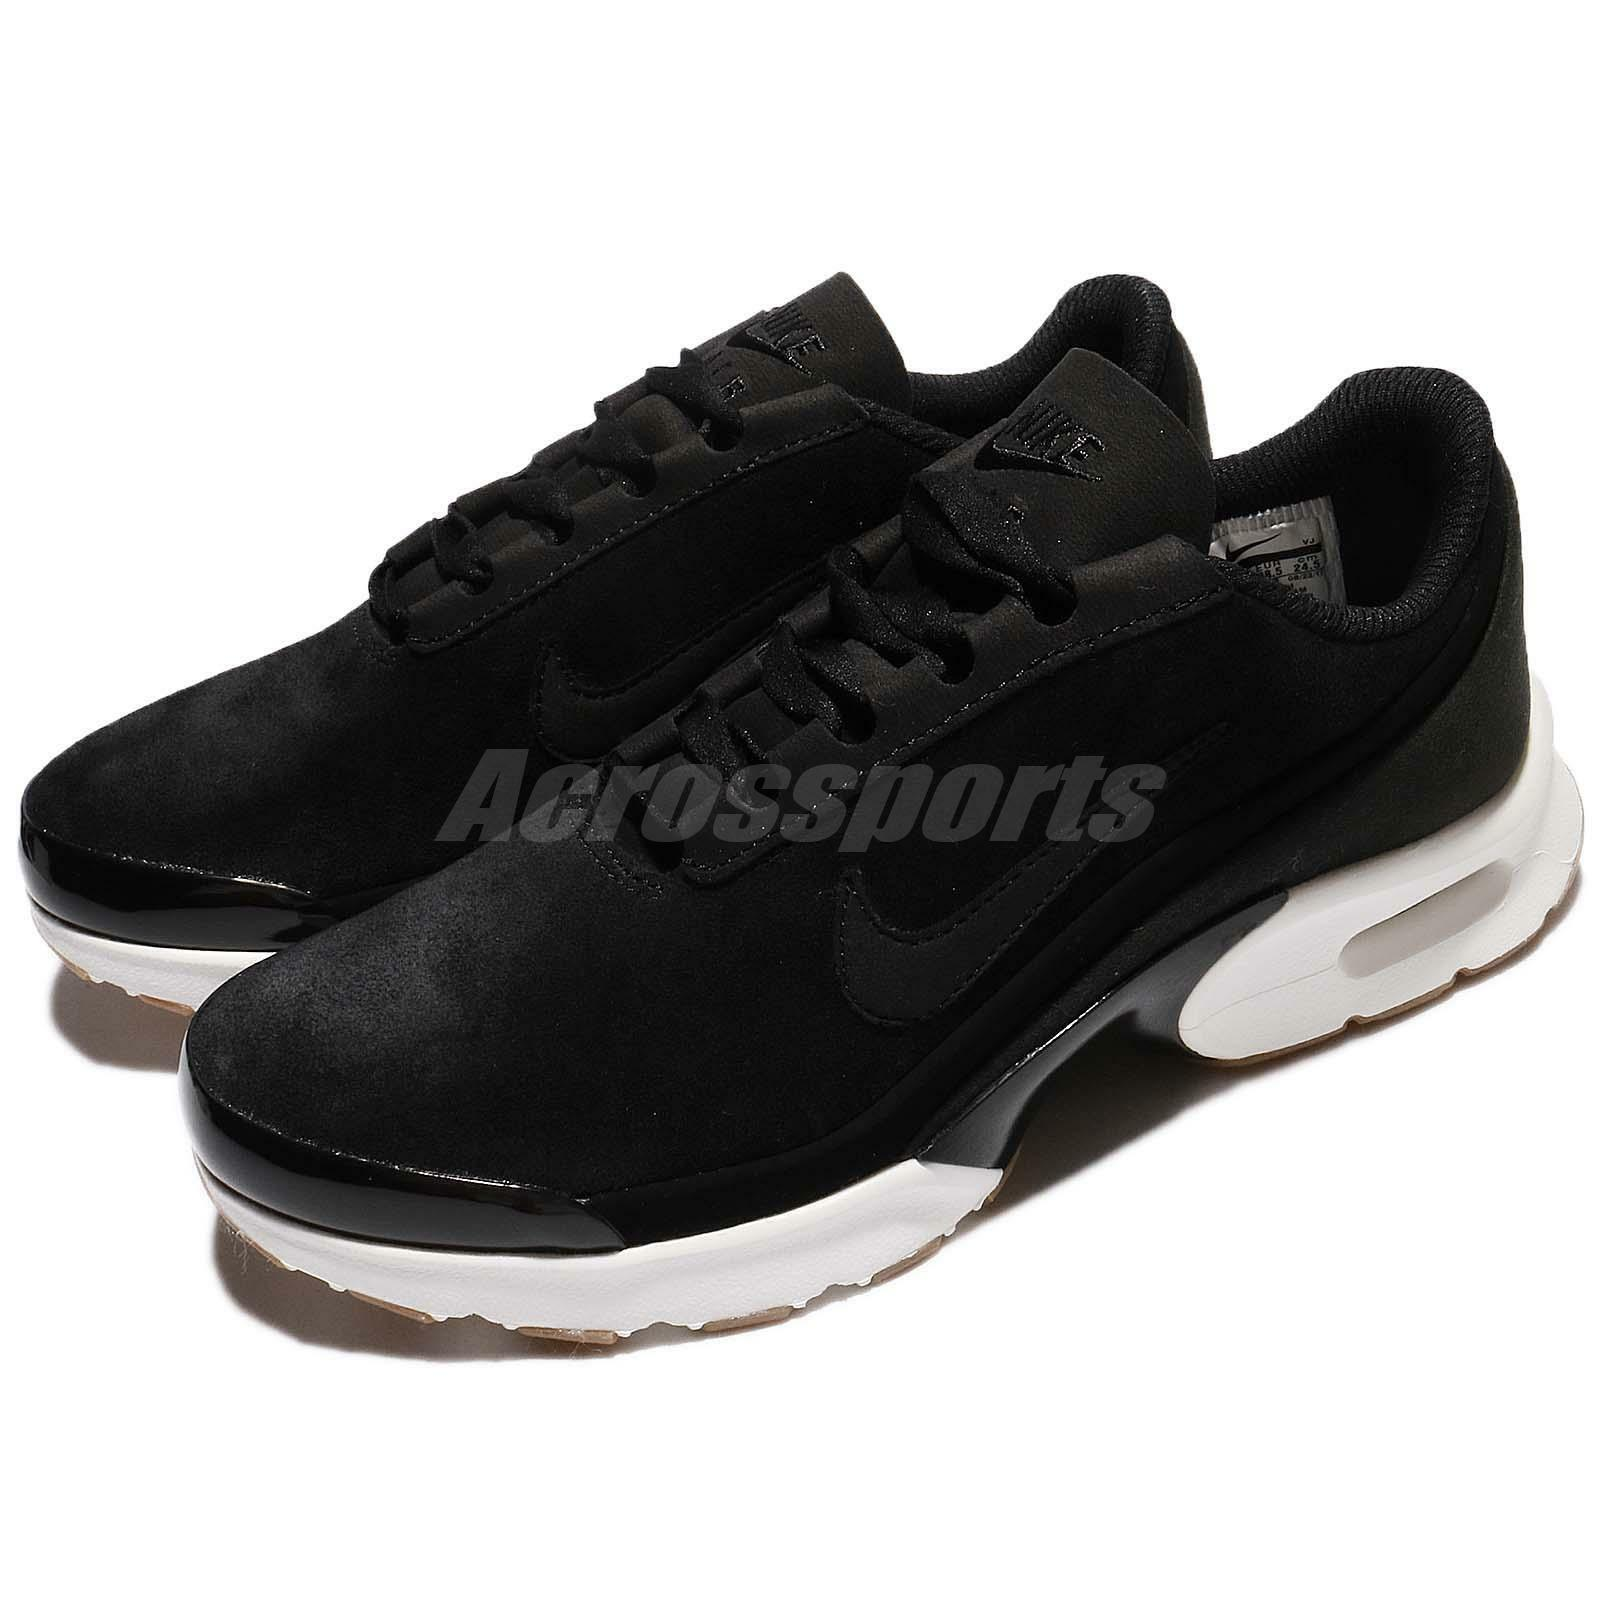 Wmns Nike Air Max Jewell SE Black Gum Med Ivory Women Running Shoes 896195-006